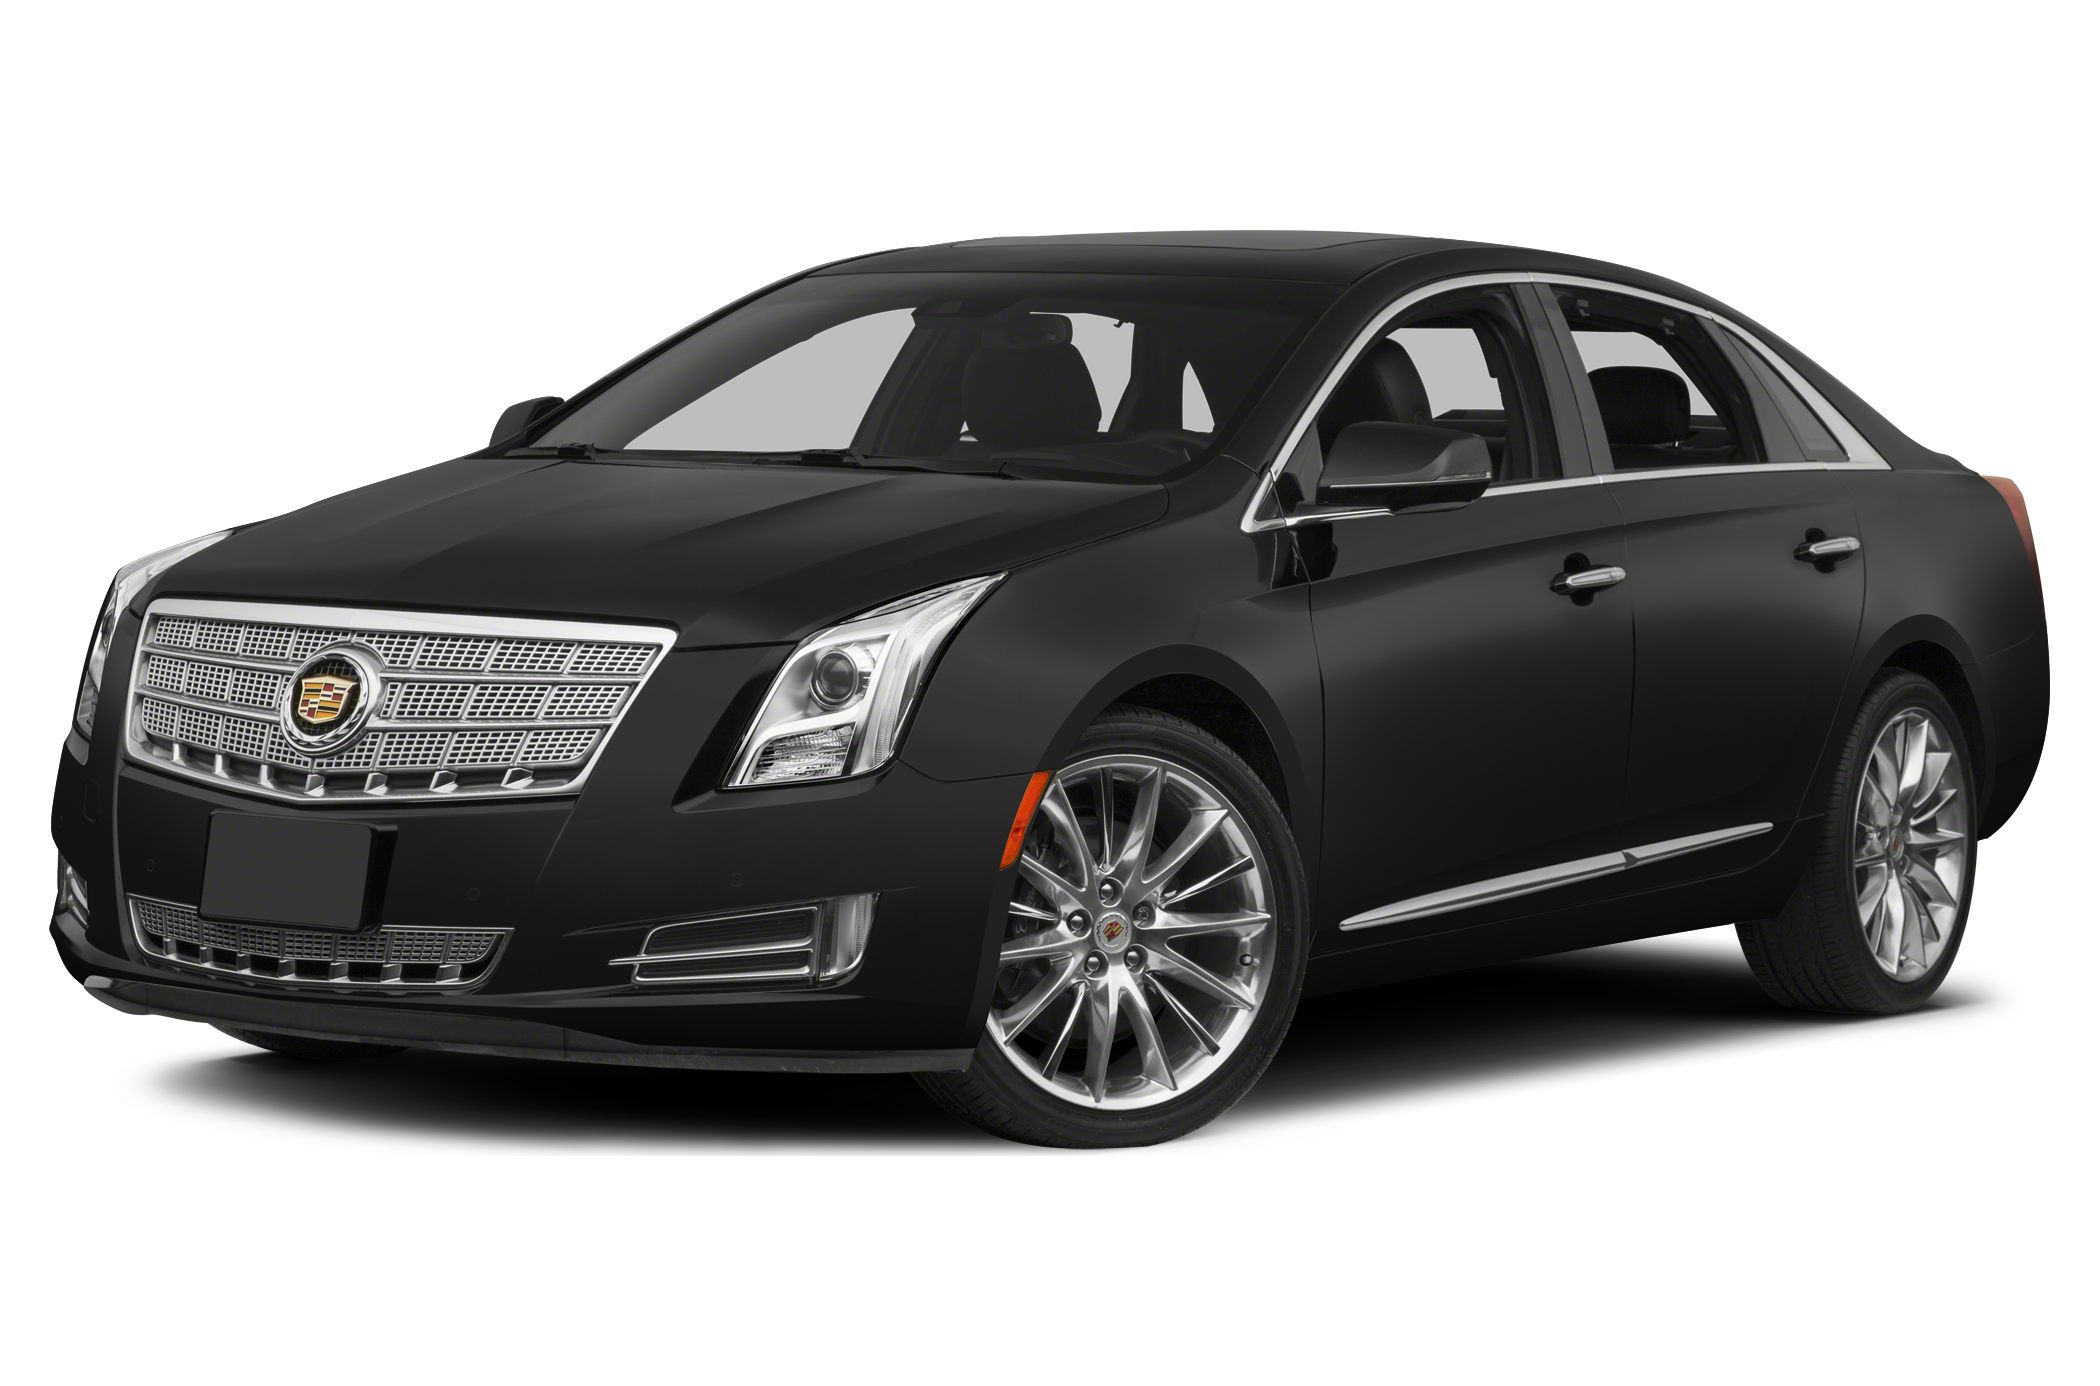 2015 Cadillac XTS Base Sedan for sale in Memphis for $46,145 with 2 miles.